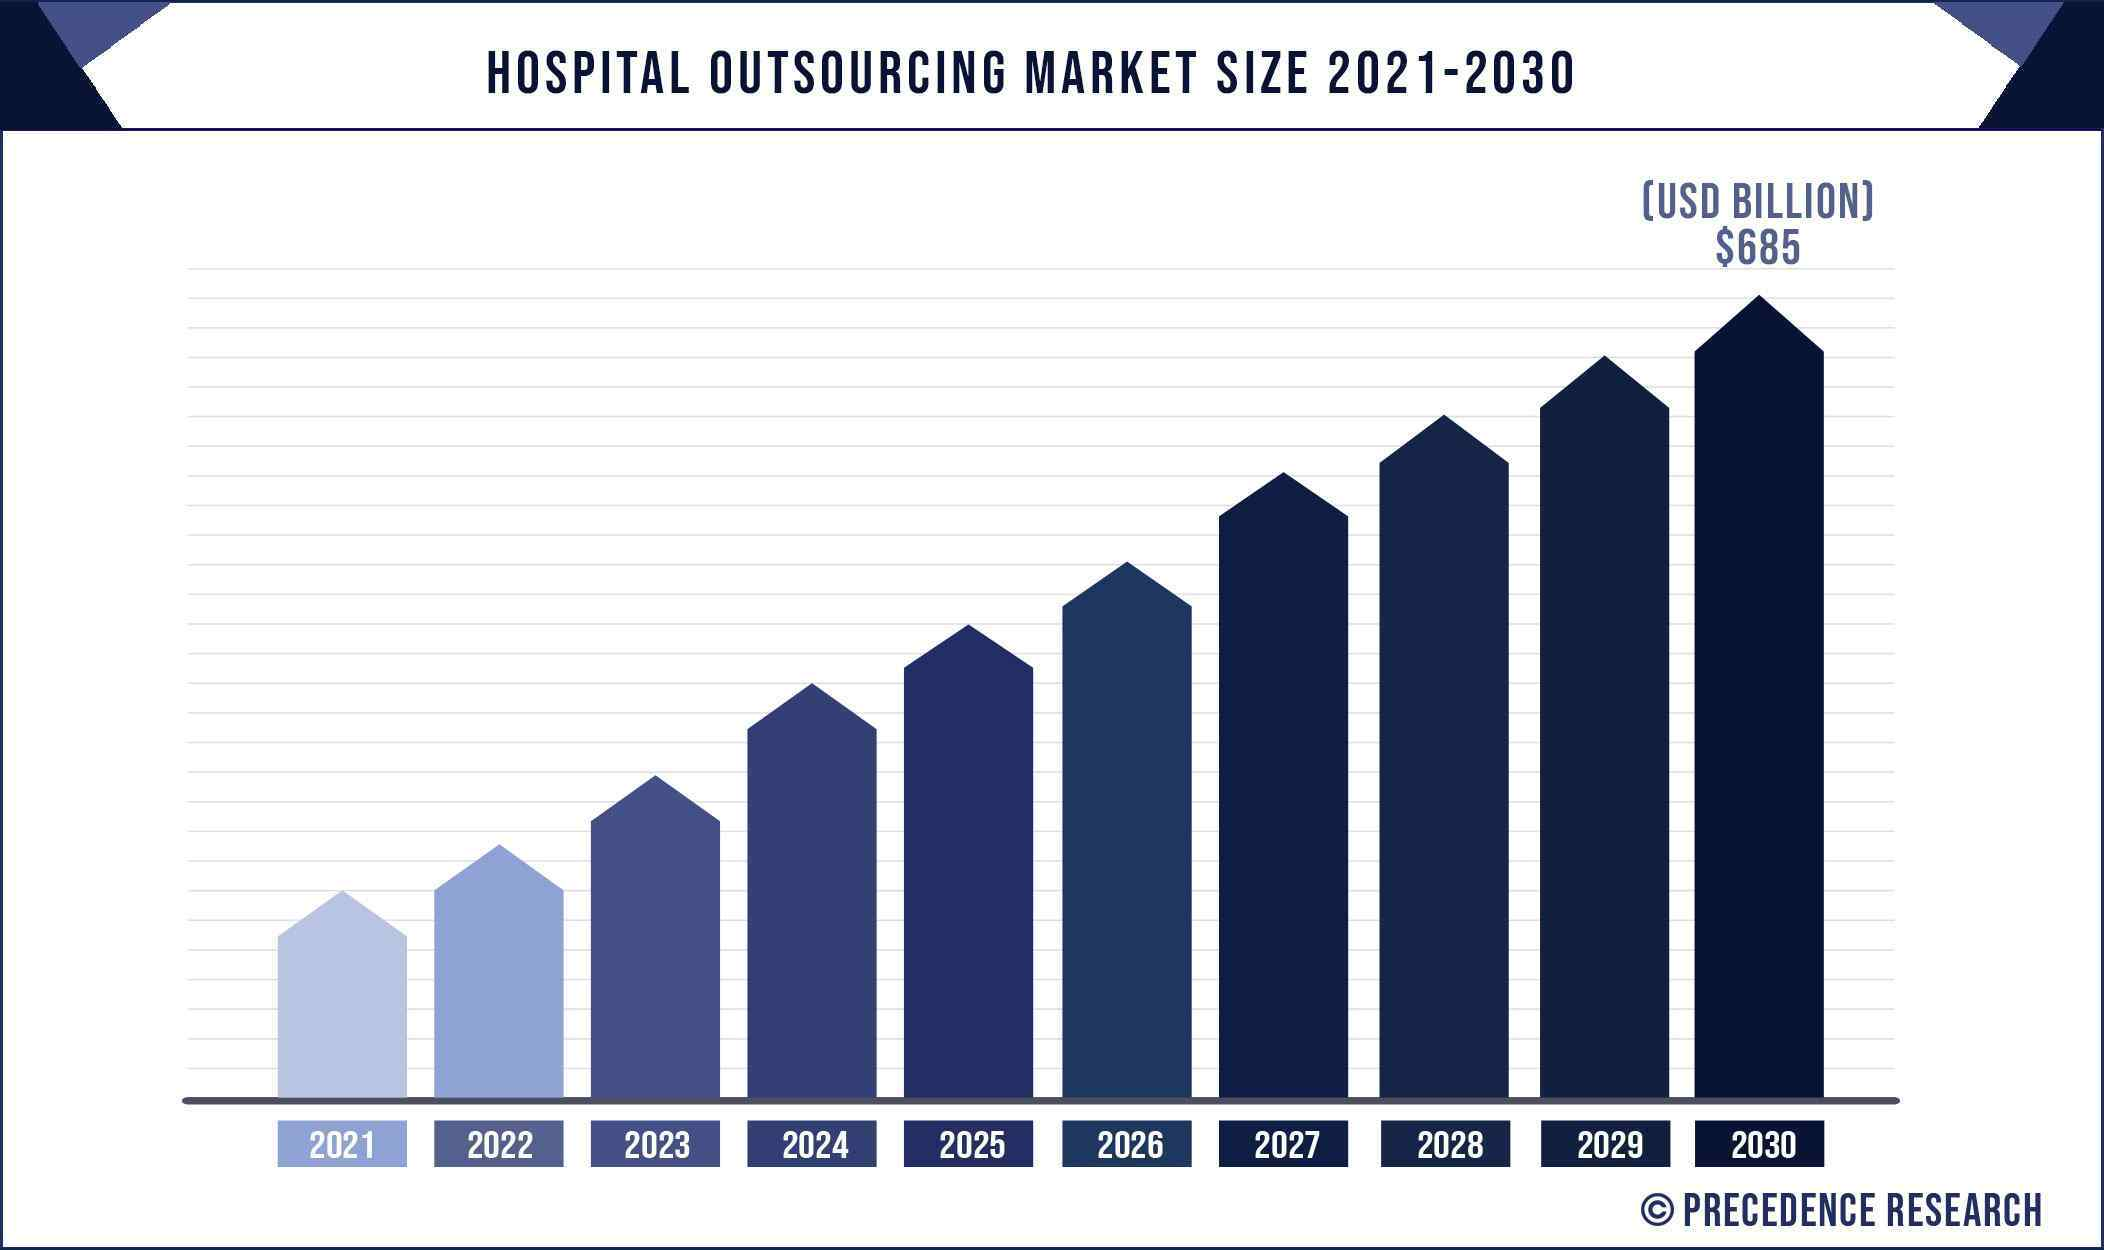 Hospital Outsourcing Market Size 2021 to 2030